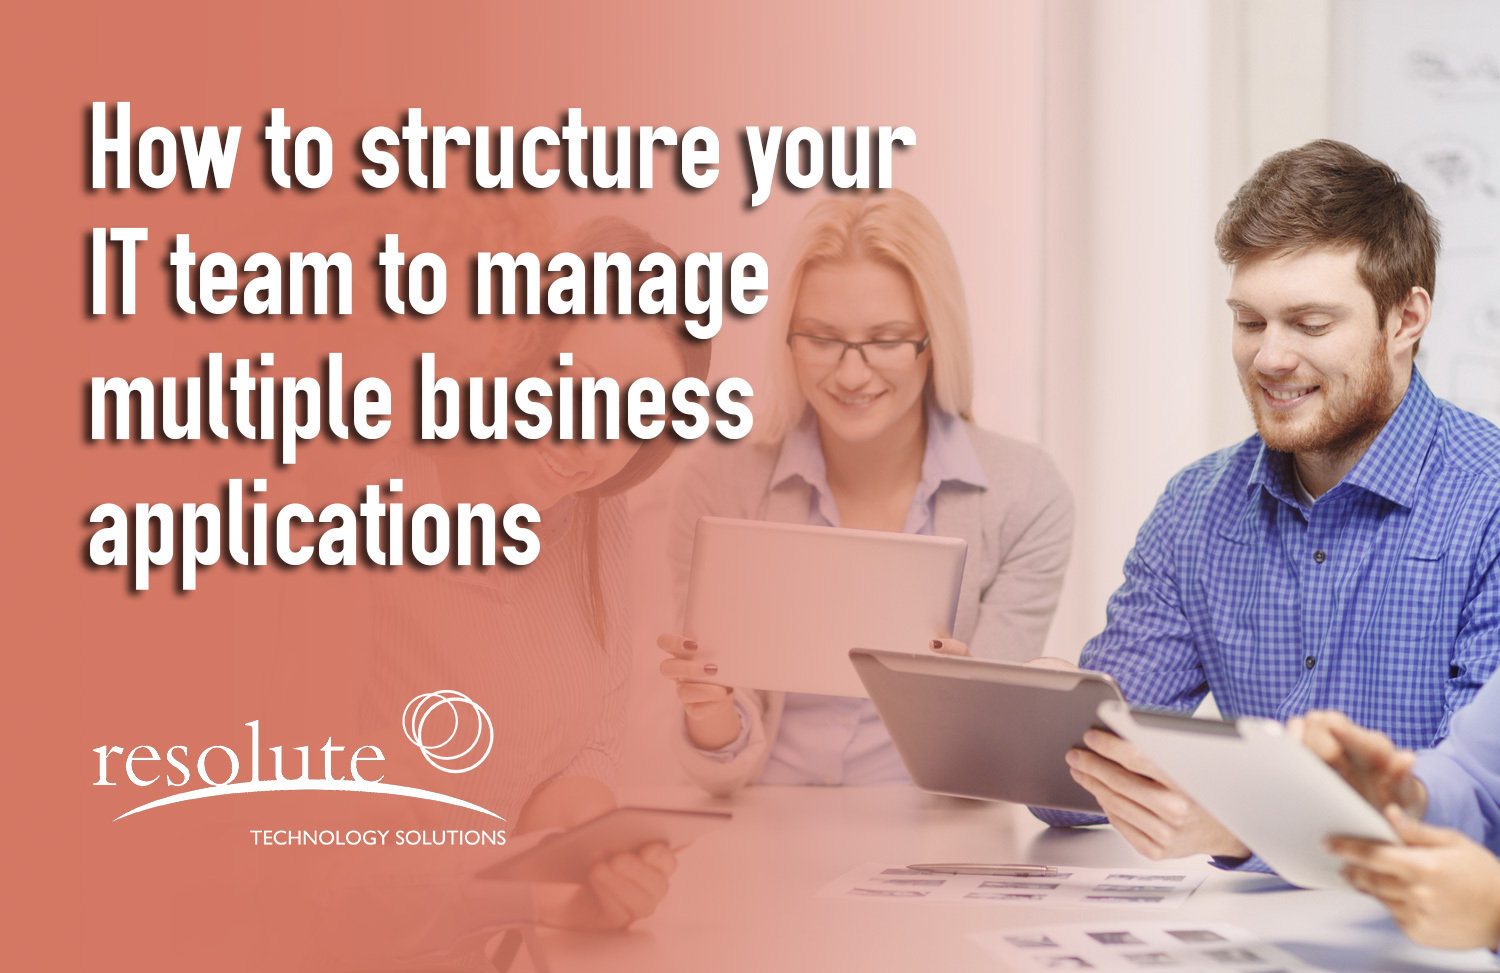 How to Structure Your IT Team to Manage Multiple Business Applications